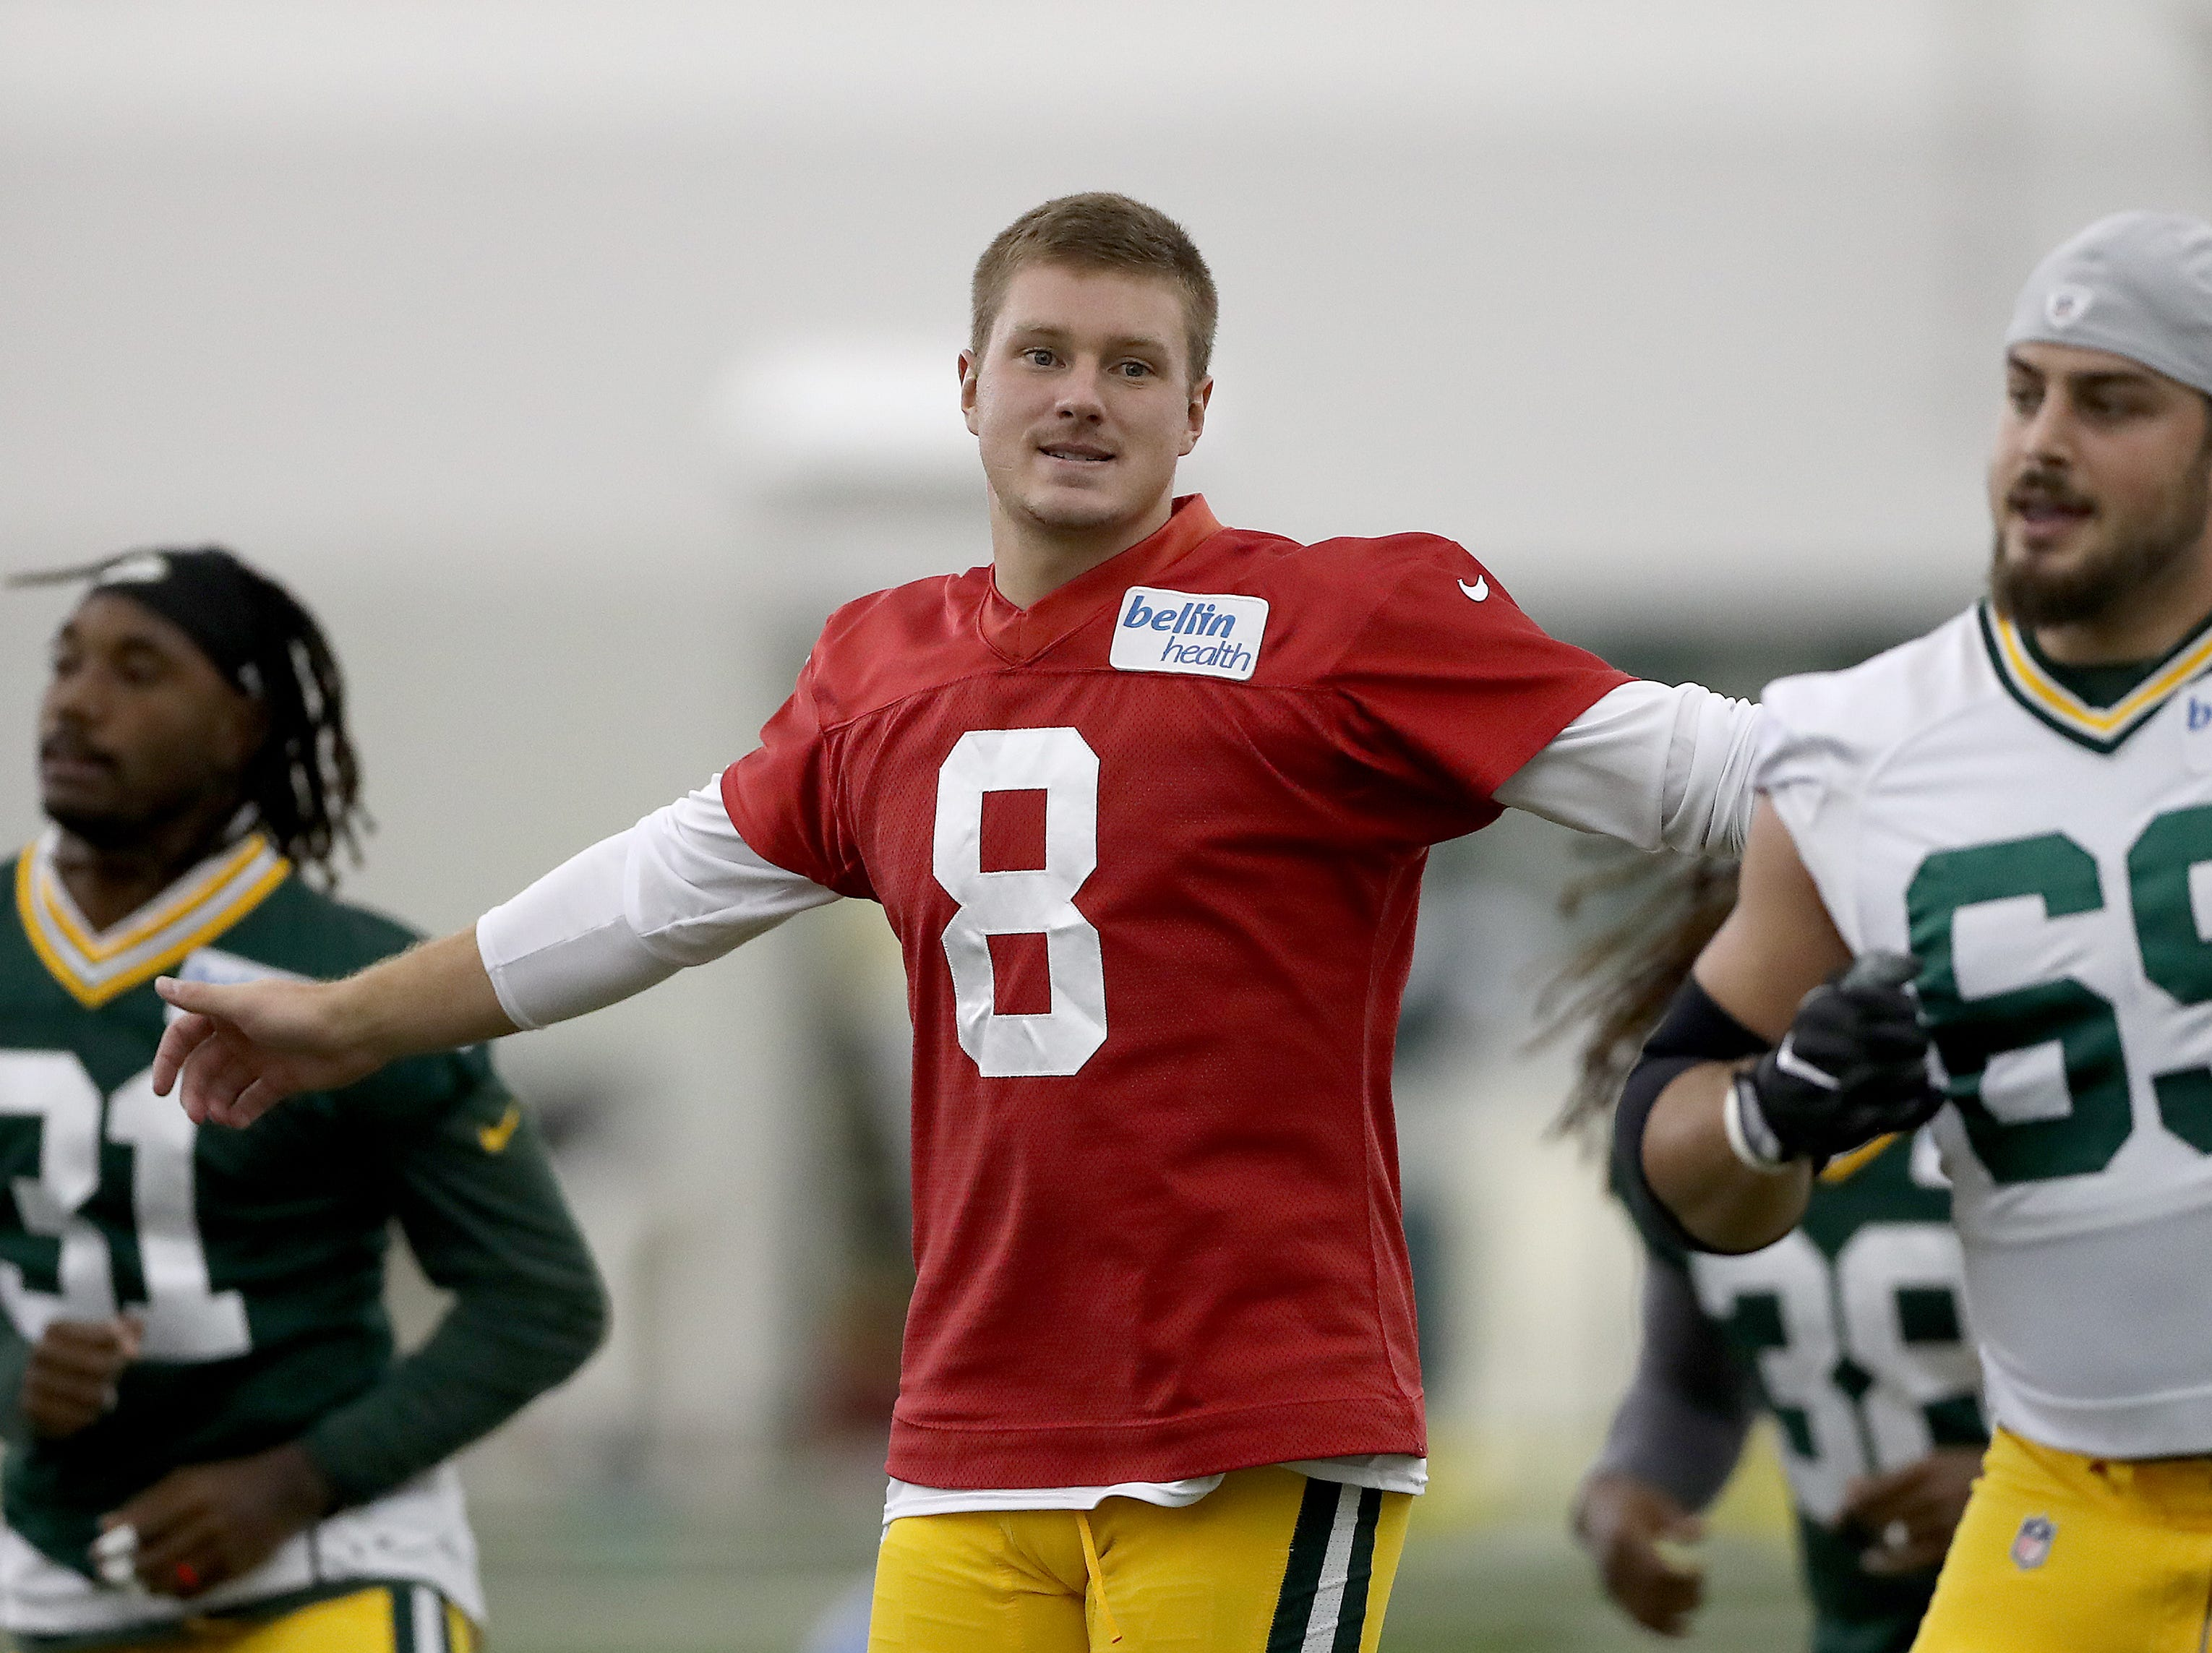 Green Bay Packers quarterback Tim Boyle (8) during Packers practice in the Don Hutson Center Monday, September 3, 2018 in Ashwaubenon, Wis